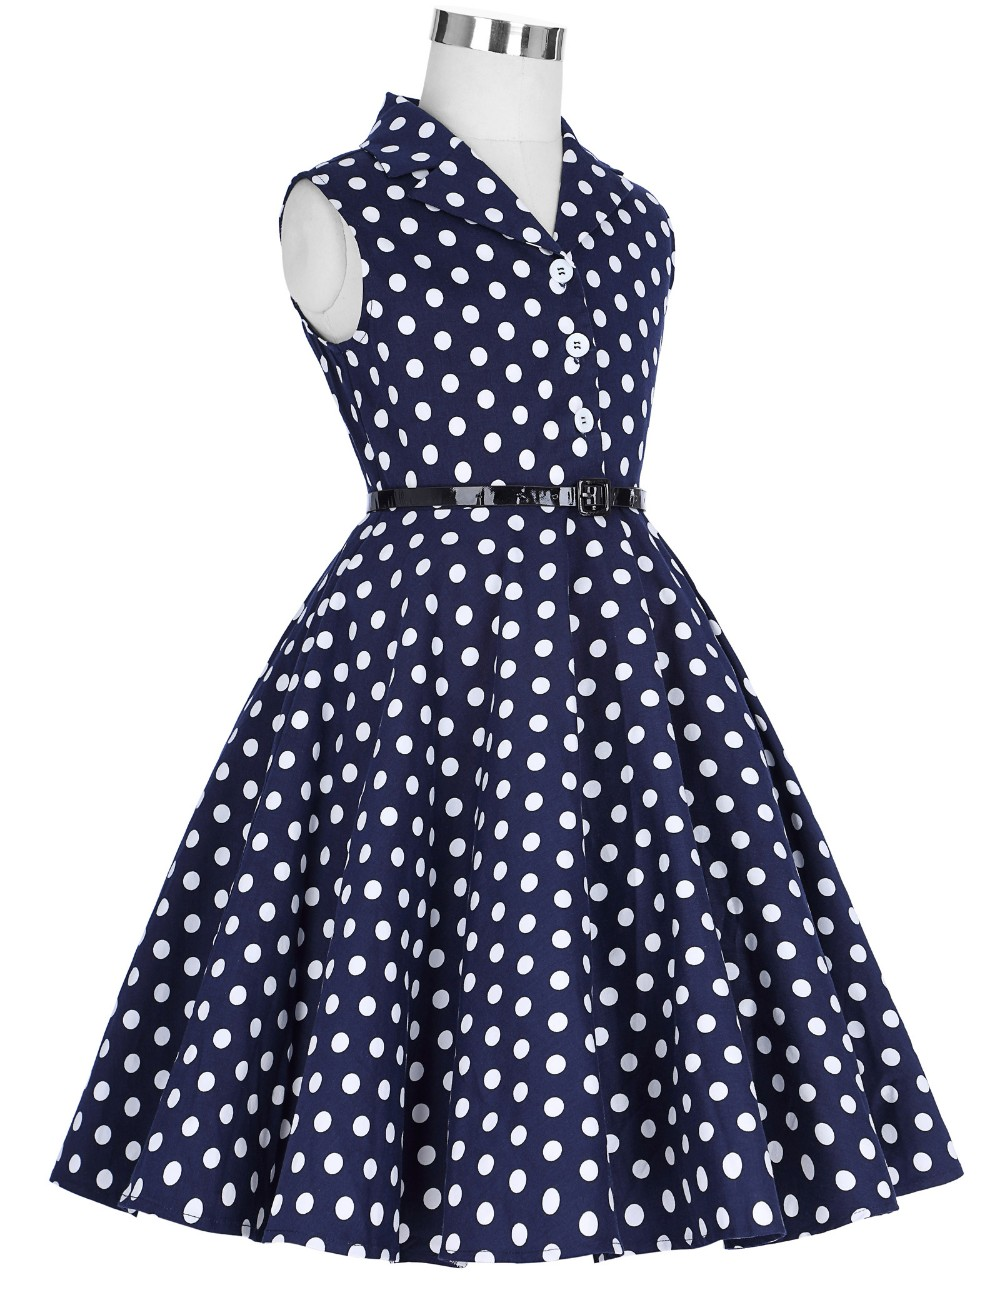 bf39fb3ac157 Grace Karin Kids 'Holly' Vintage 50's Dress Girls Retro Vintage Sleeveless  Lapel Collar Navy